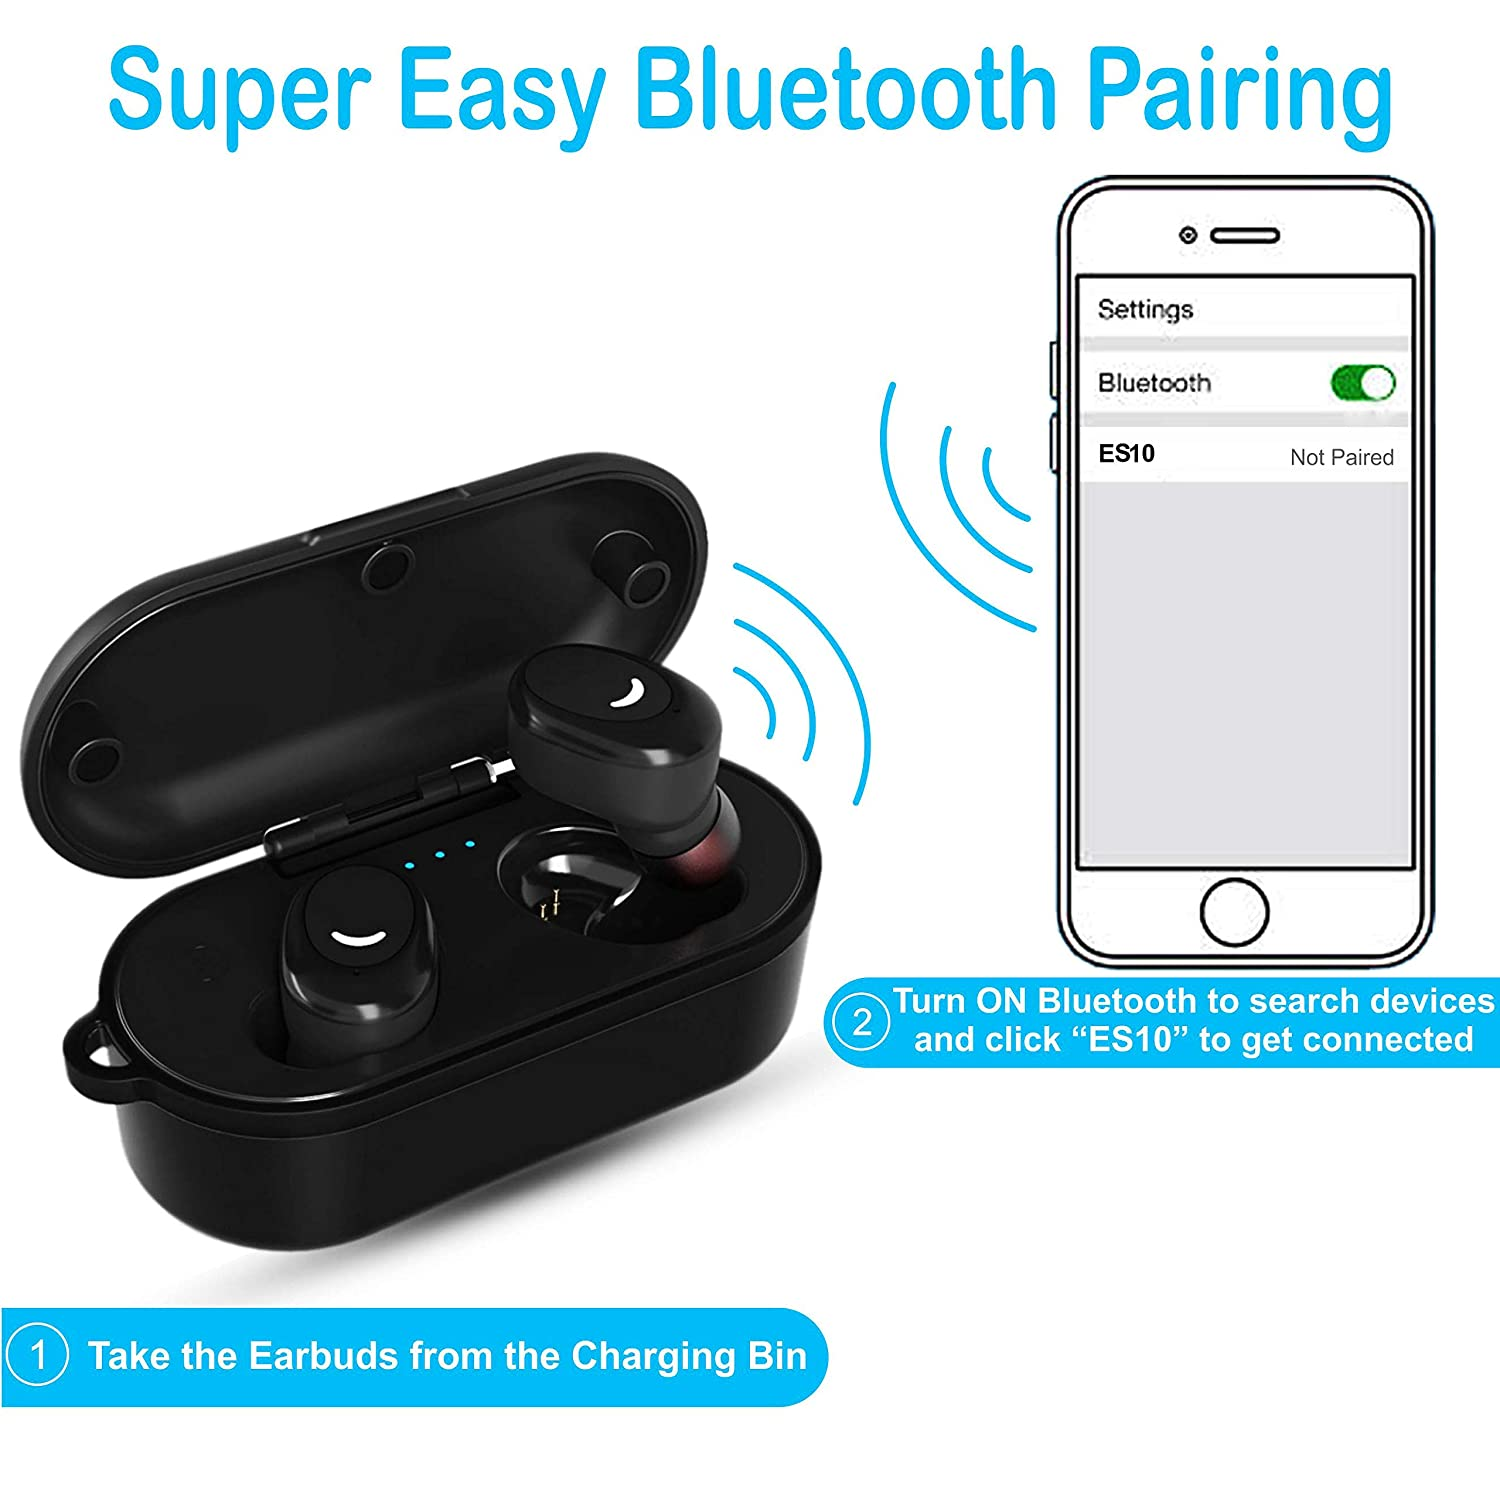 Waterproof Wireless Earbuds TWS Headphones Bluetooth 5.0 IPX8 EchoStarz ES10 Deep Bass Sound Hands-Free Dual Calling Built-in Mic Charging Case Fitness Running Walking Sport Gym Outdoor Indoor